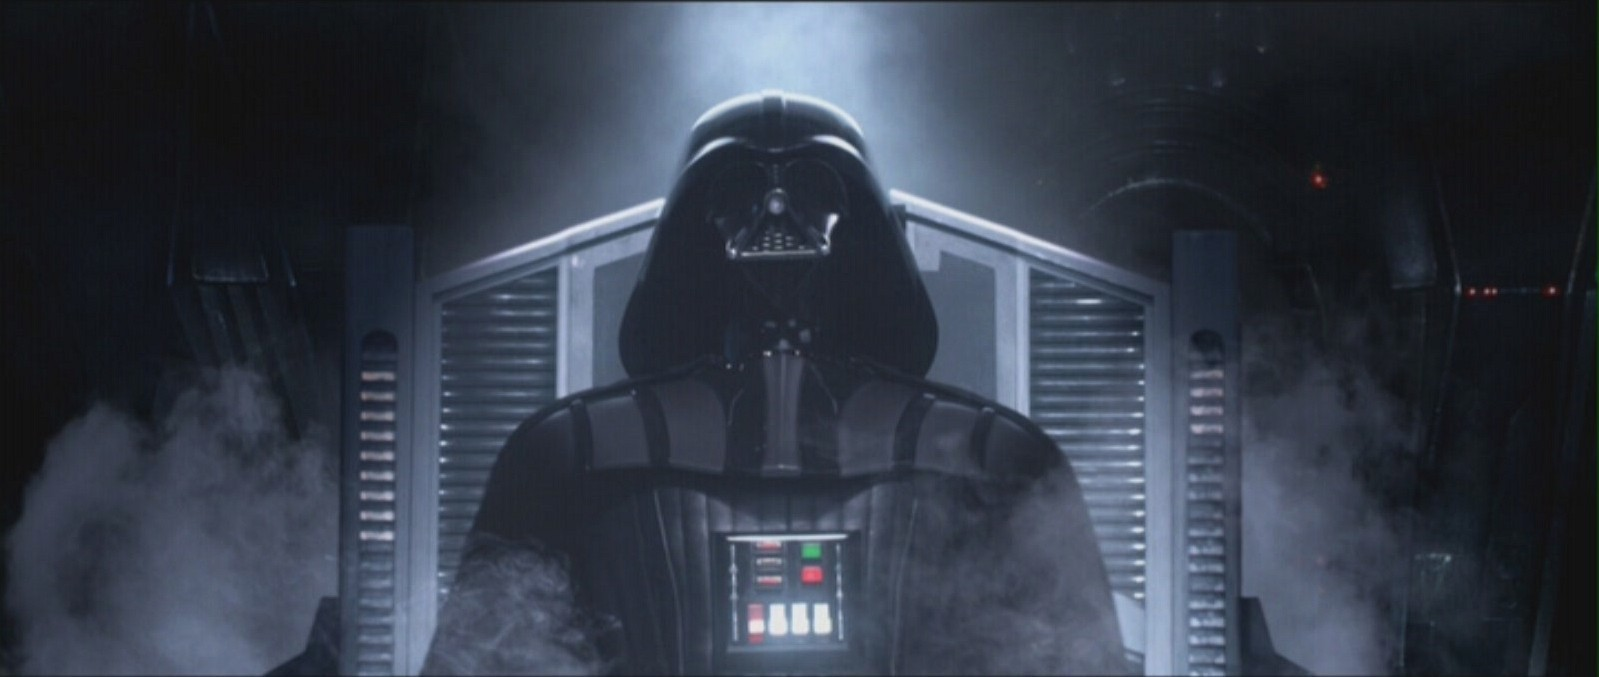 Darth vader star wars episode iii: revenge of the sith - darth vader